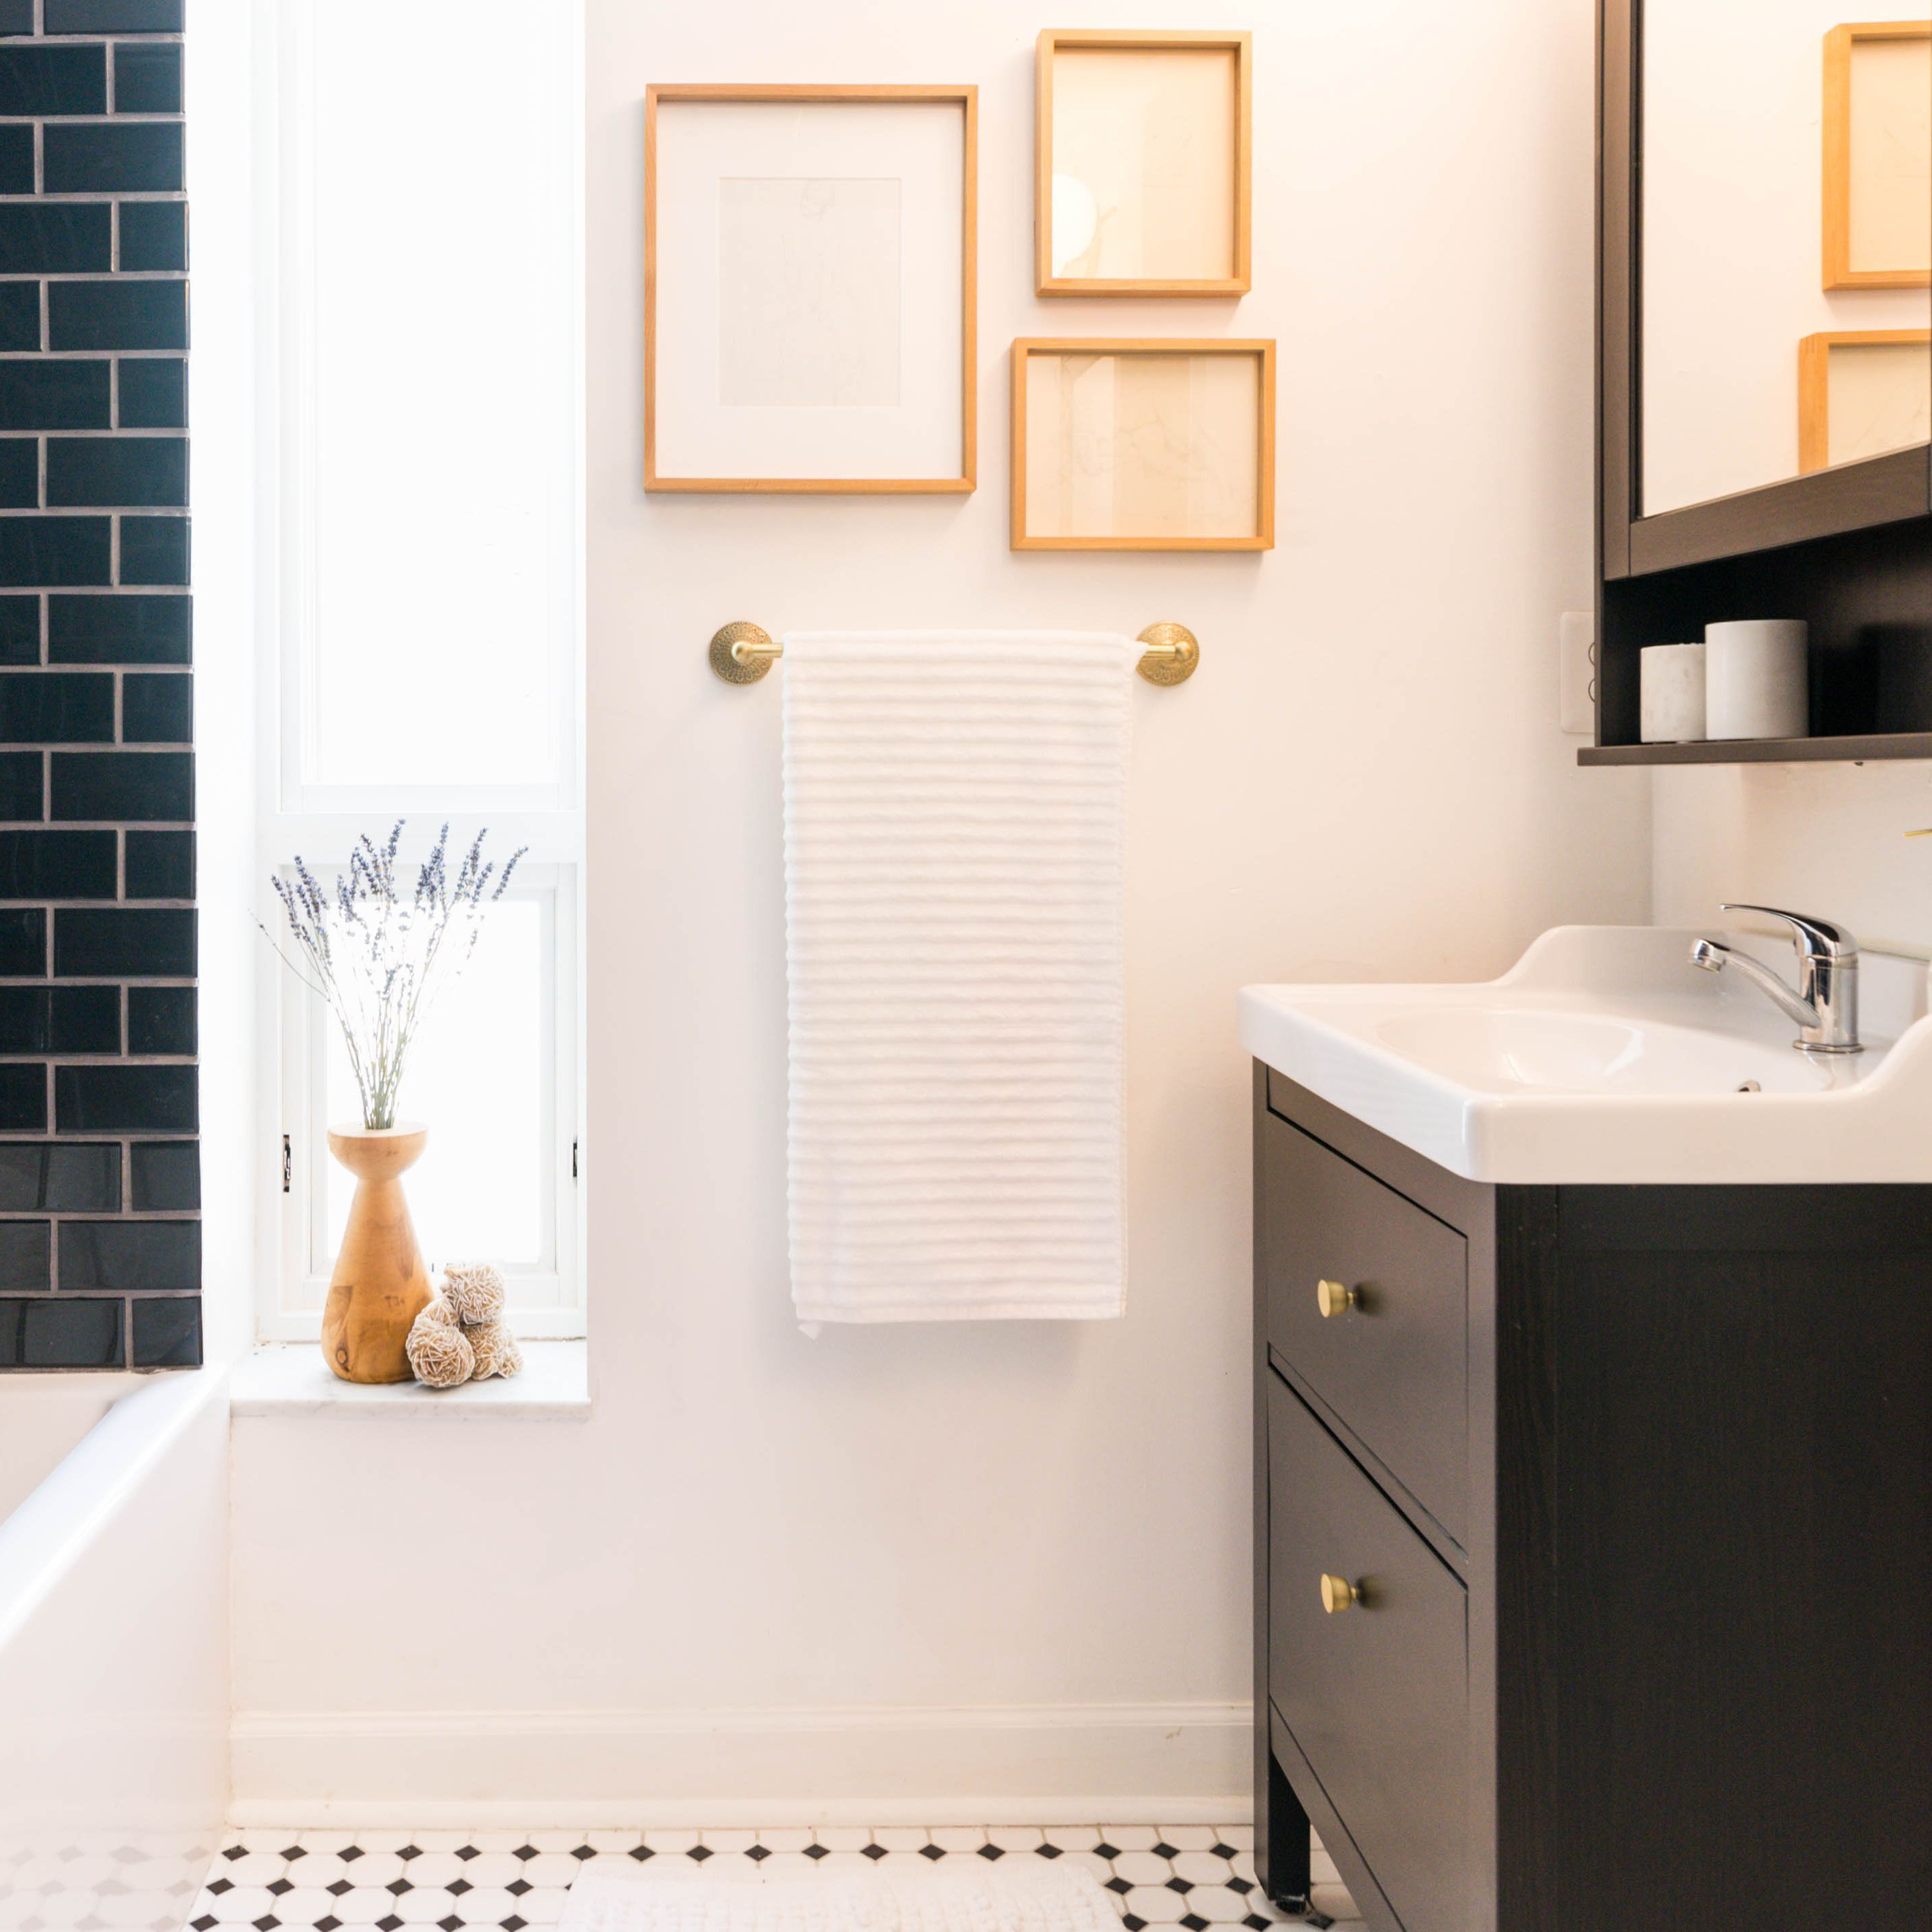 Easy Ways To Cut Your Bathroom Renovation Costs